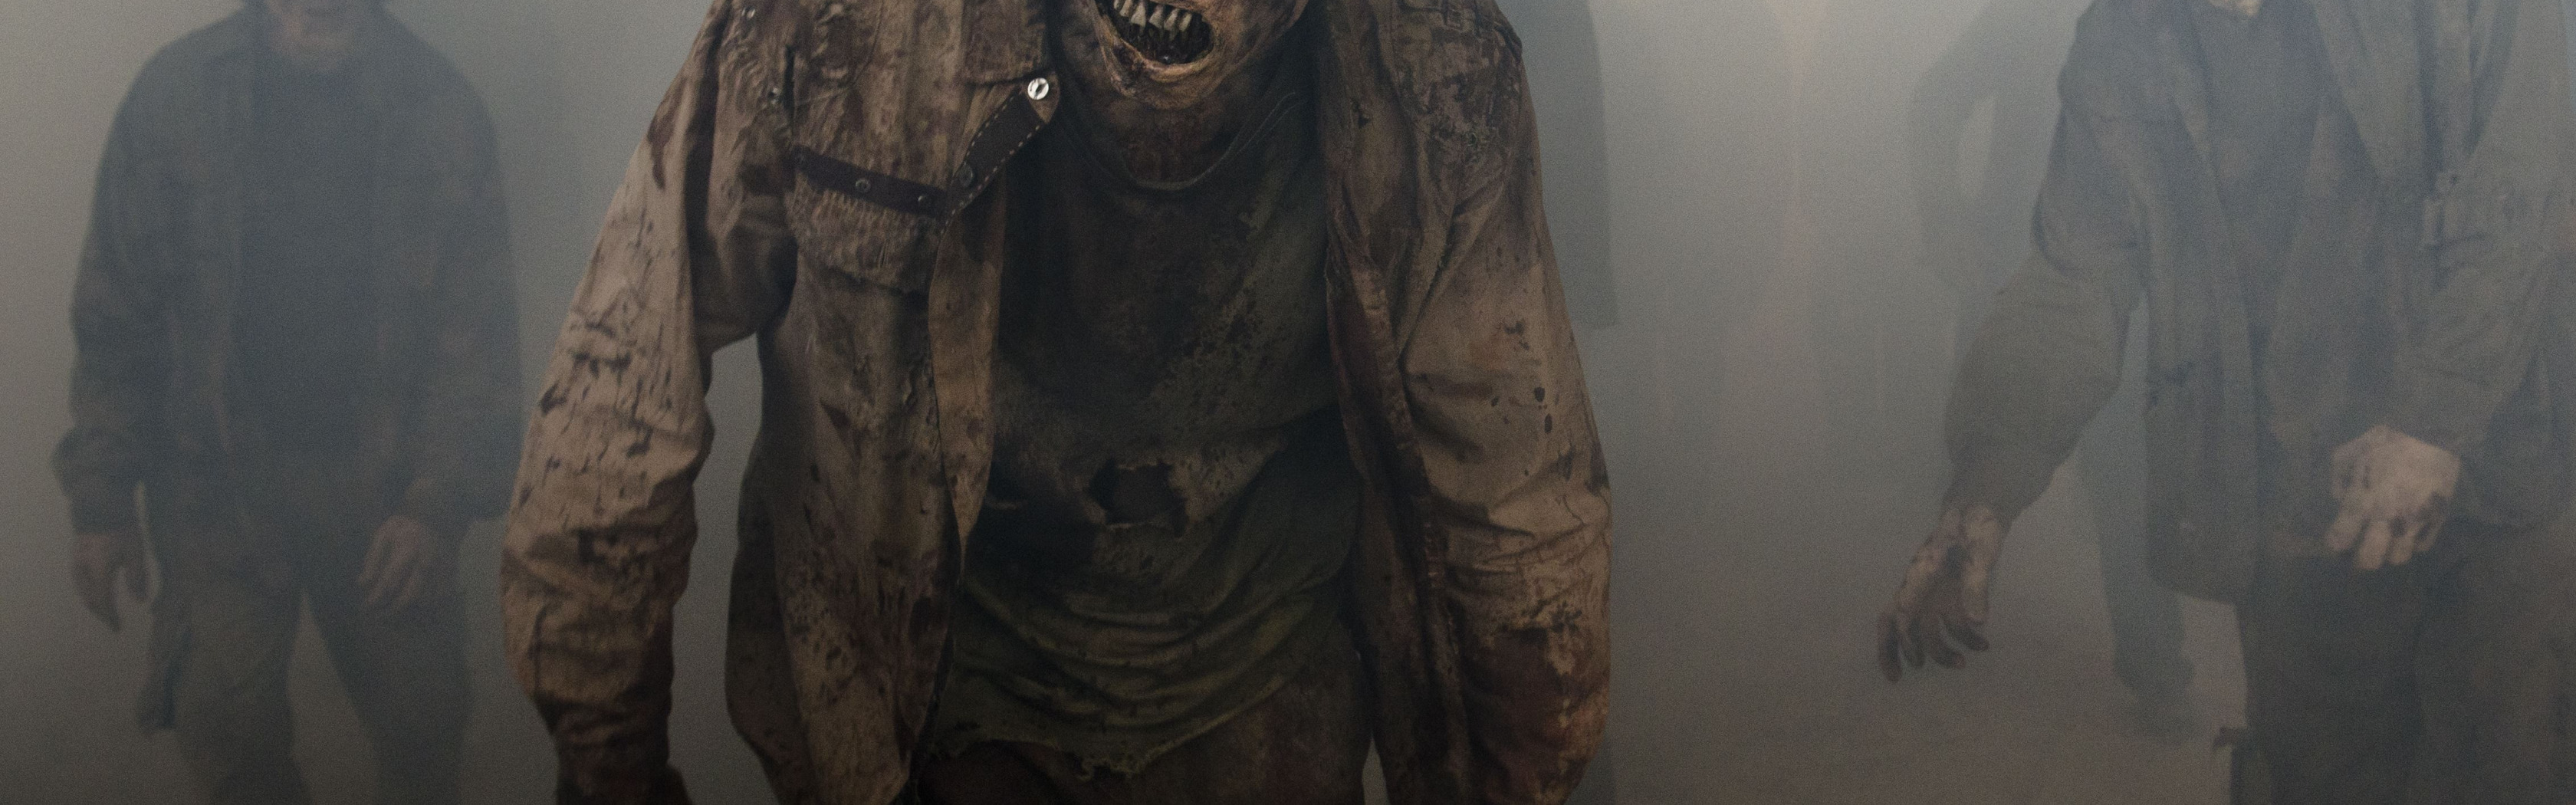 Download Wallpaper Wallpaper Zombie Dead Death Mist The